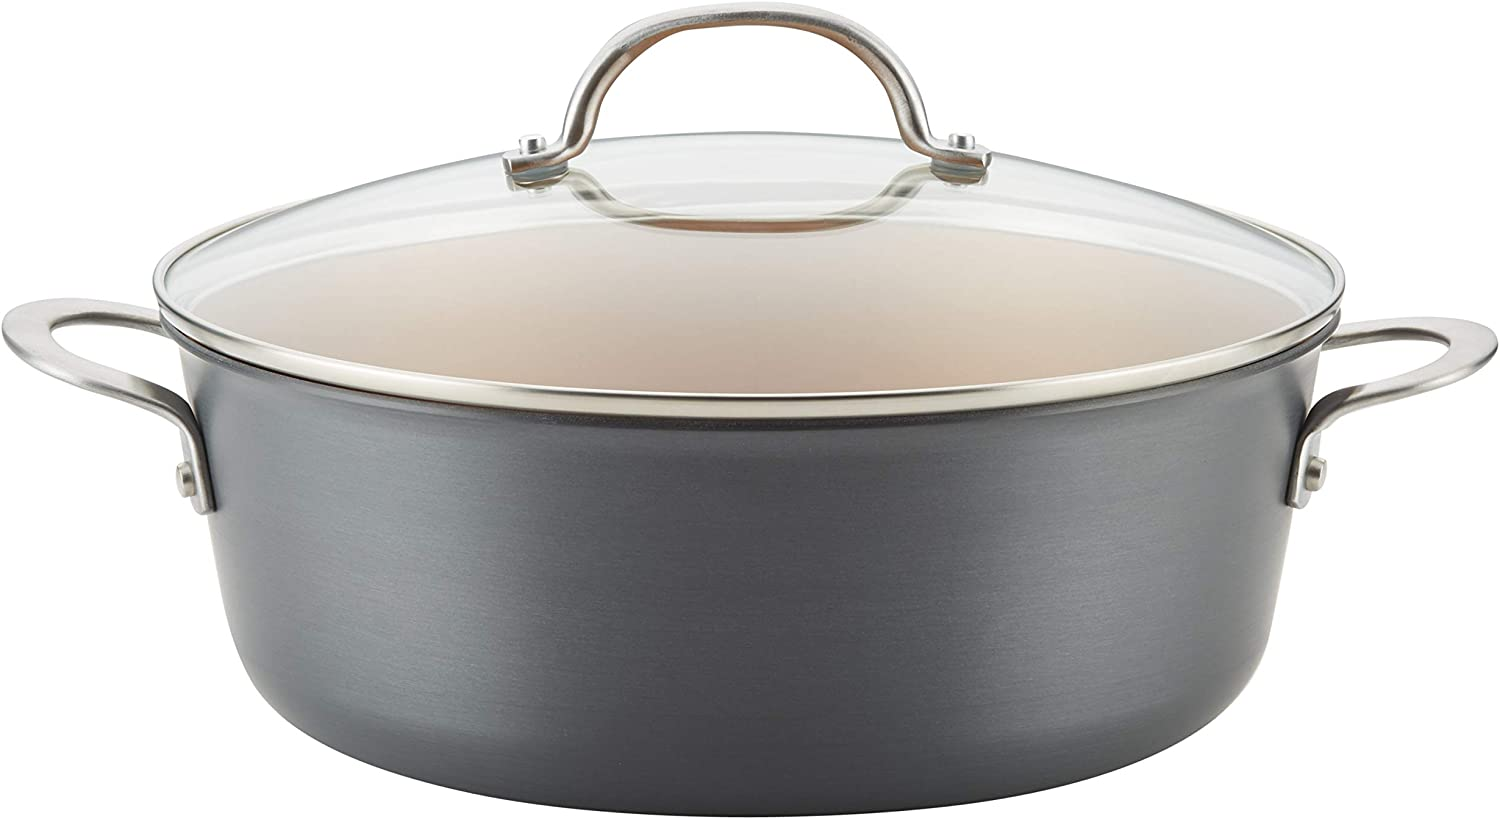 Ayesha Curry 80189 Home Collection Nonstick Stock Pot/Stockpot with Lid, 7.5 Quart, Charcoal Gray